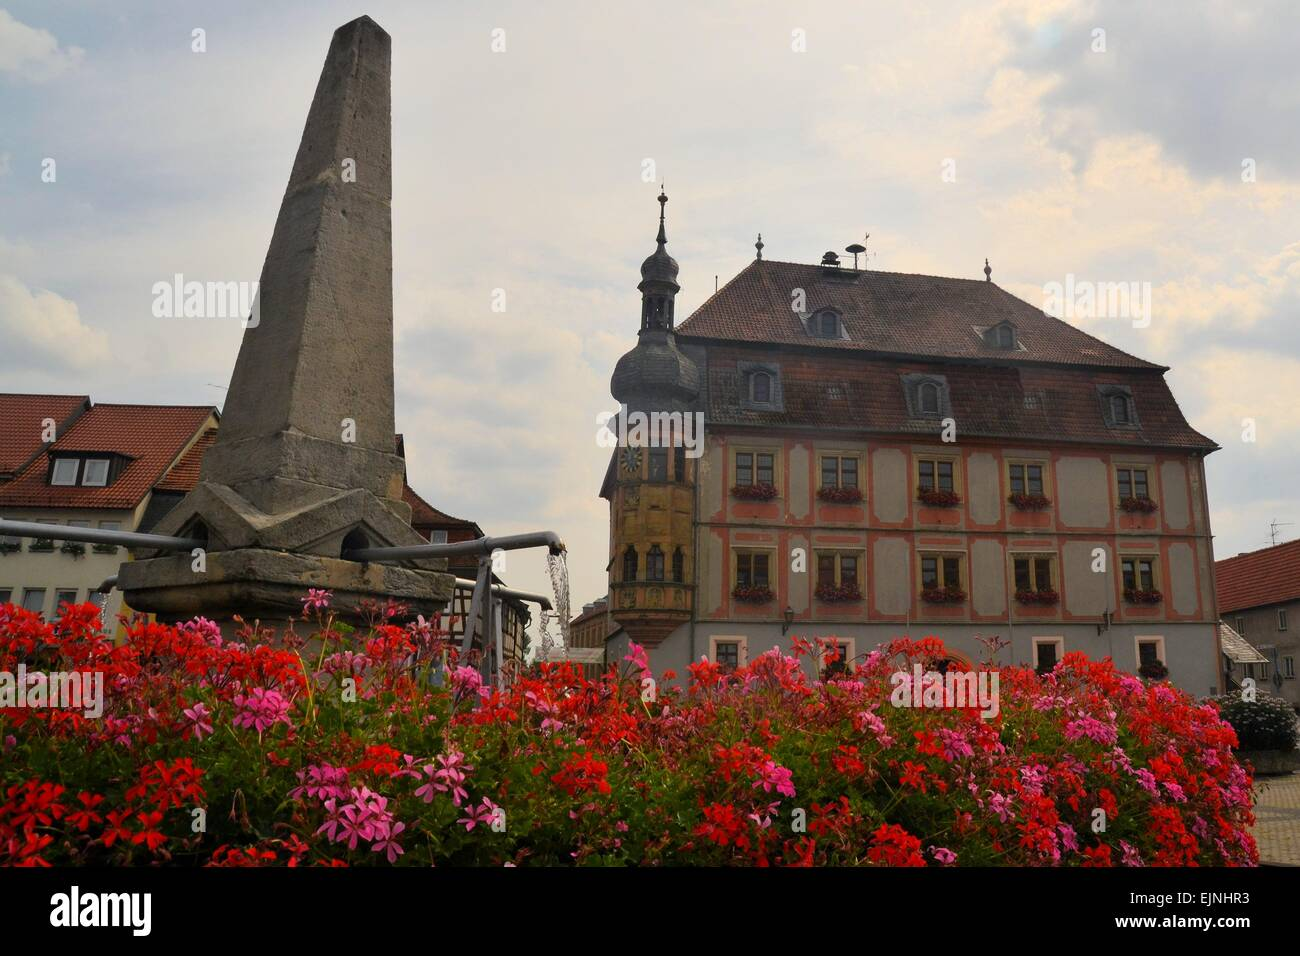 Fountain and town house in old center, Koenigshofen, Germany - Stock Image